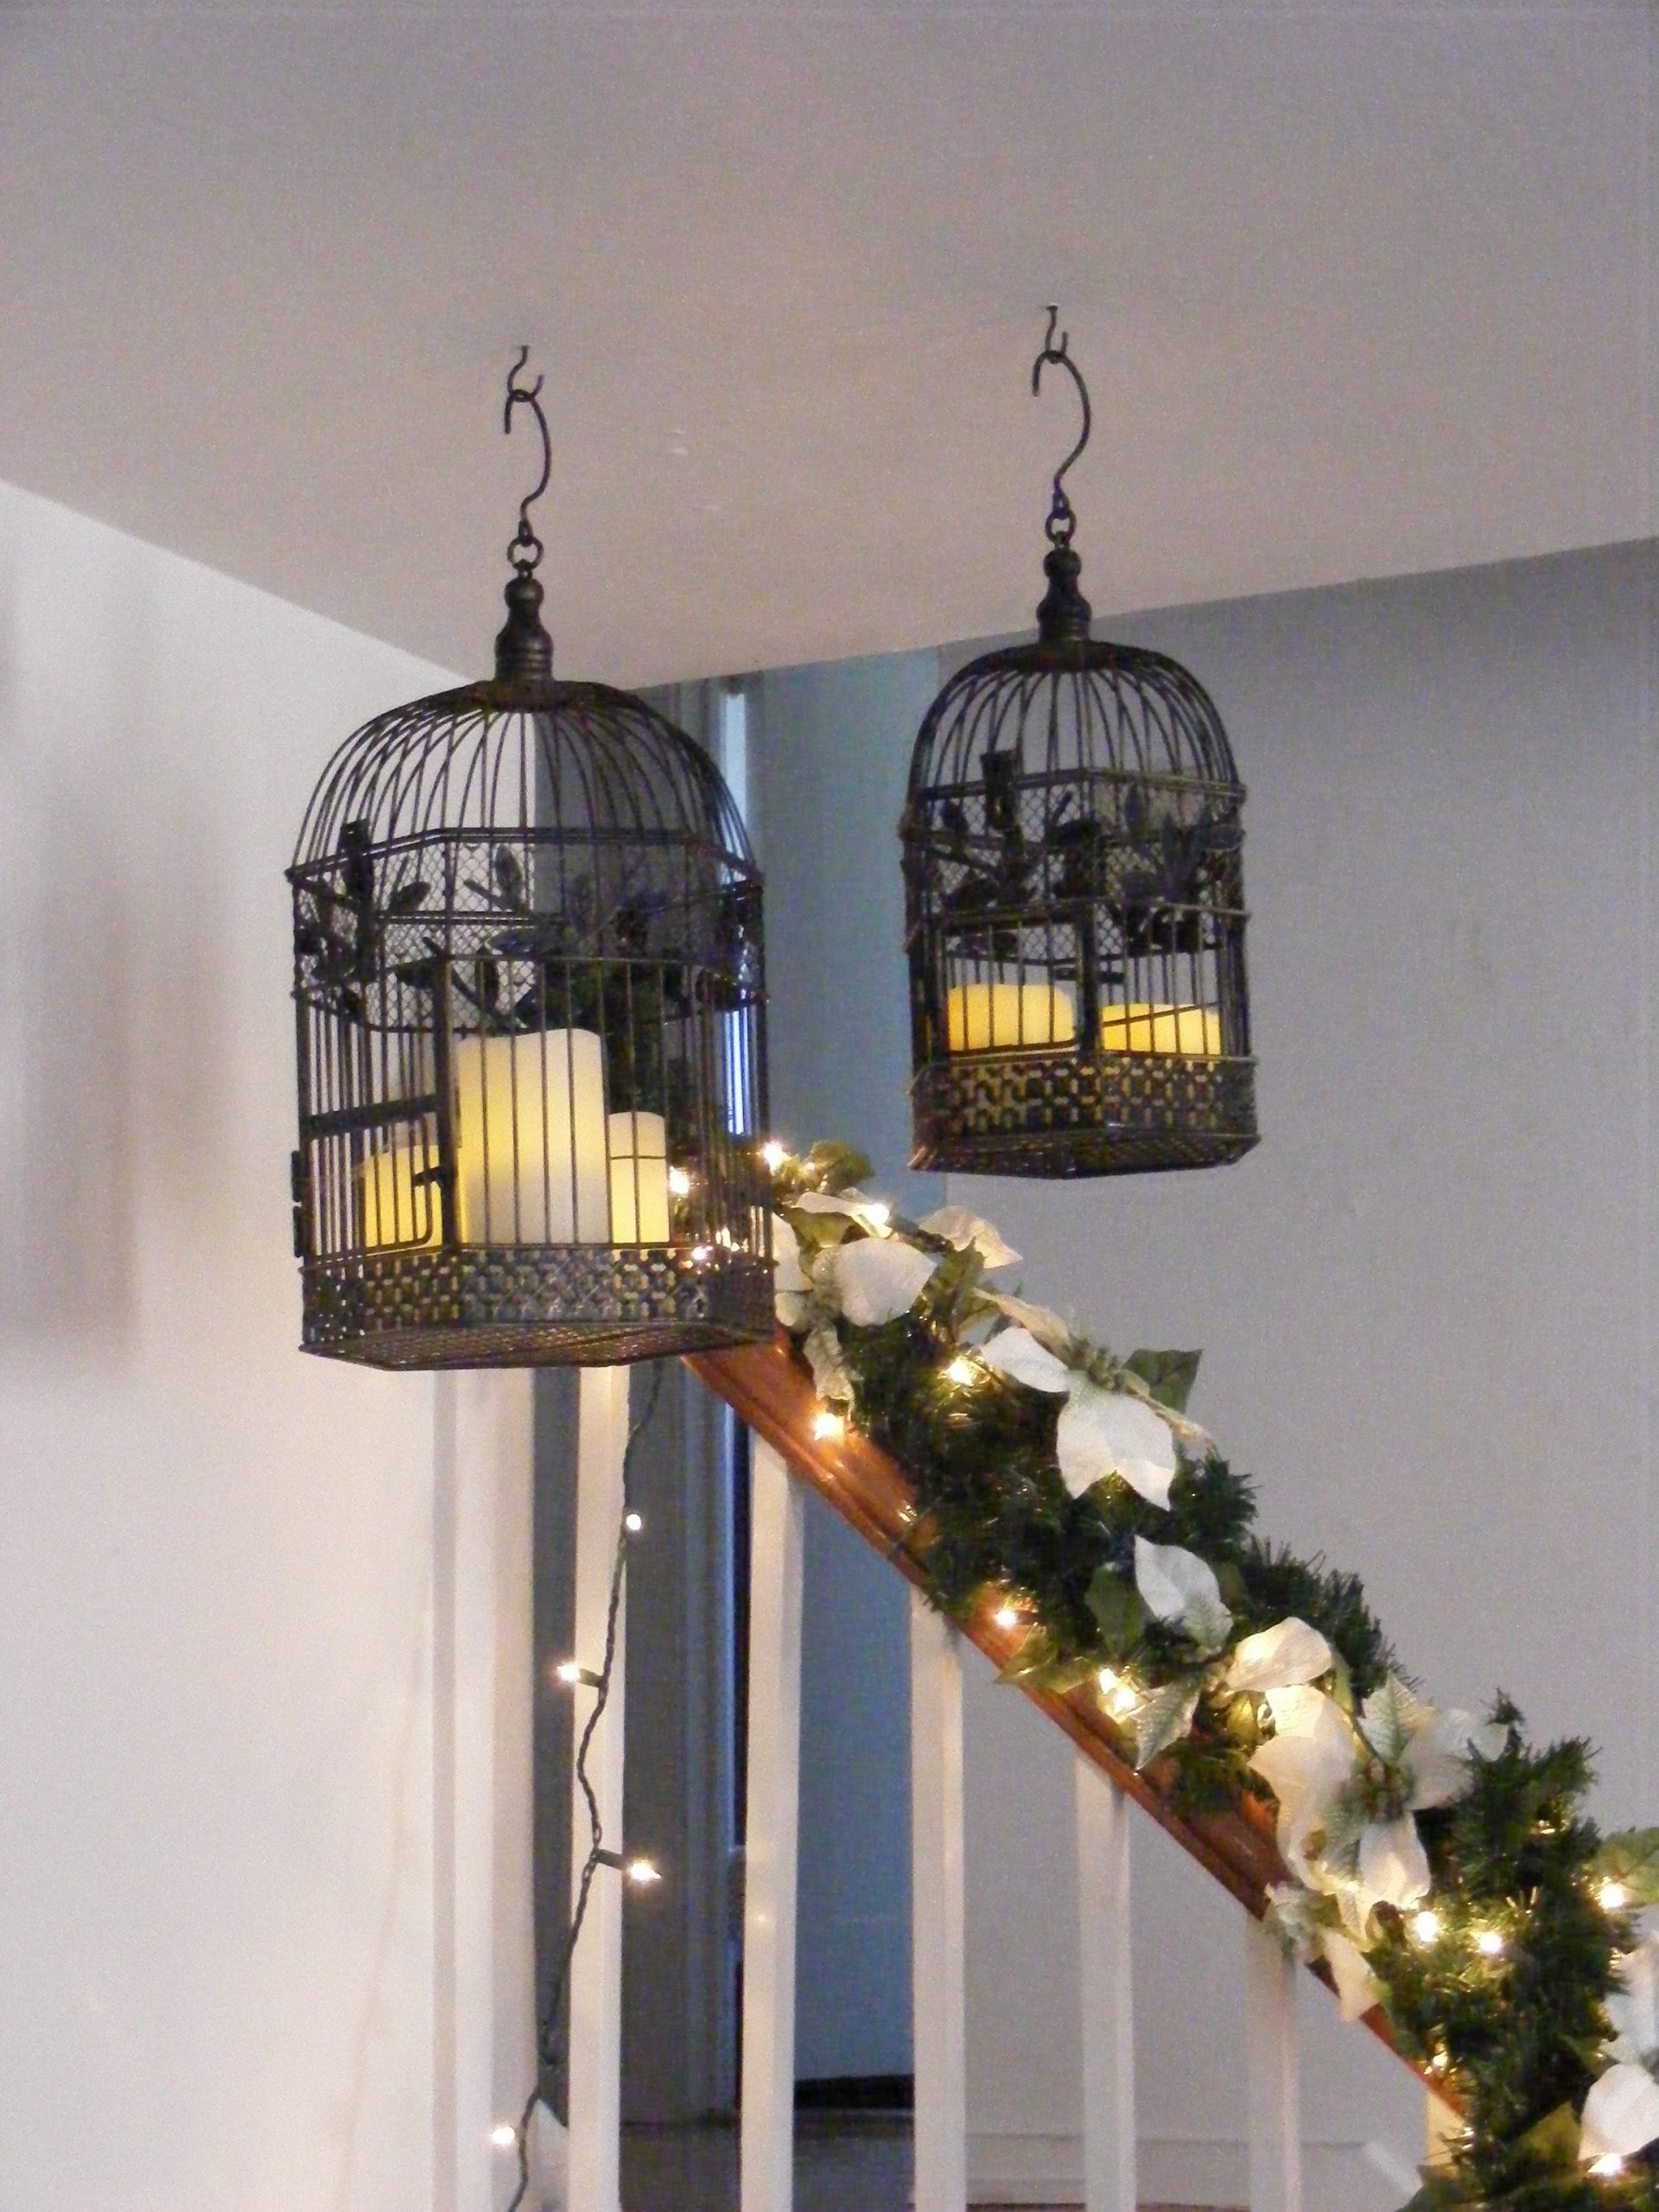 Another Birdie Cage Idea for the Less Electrically Inclined